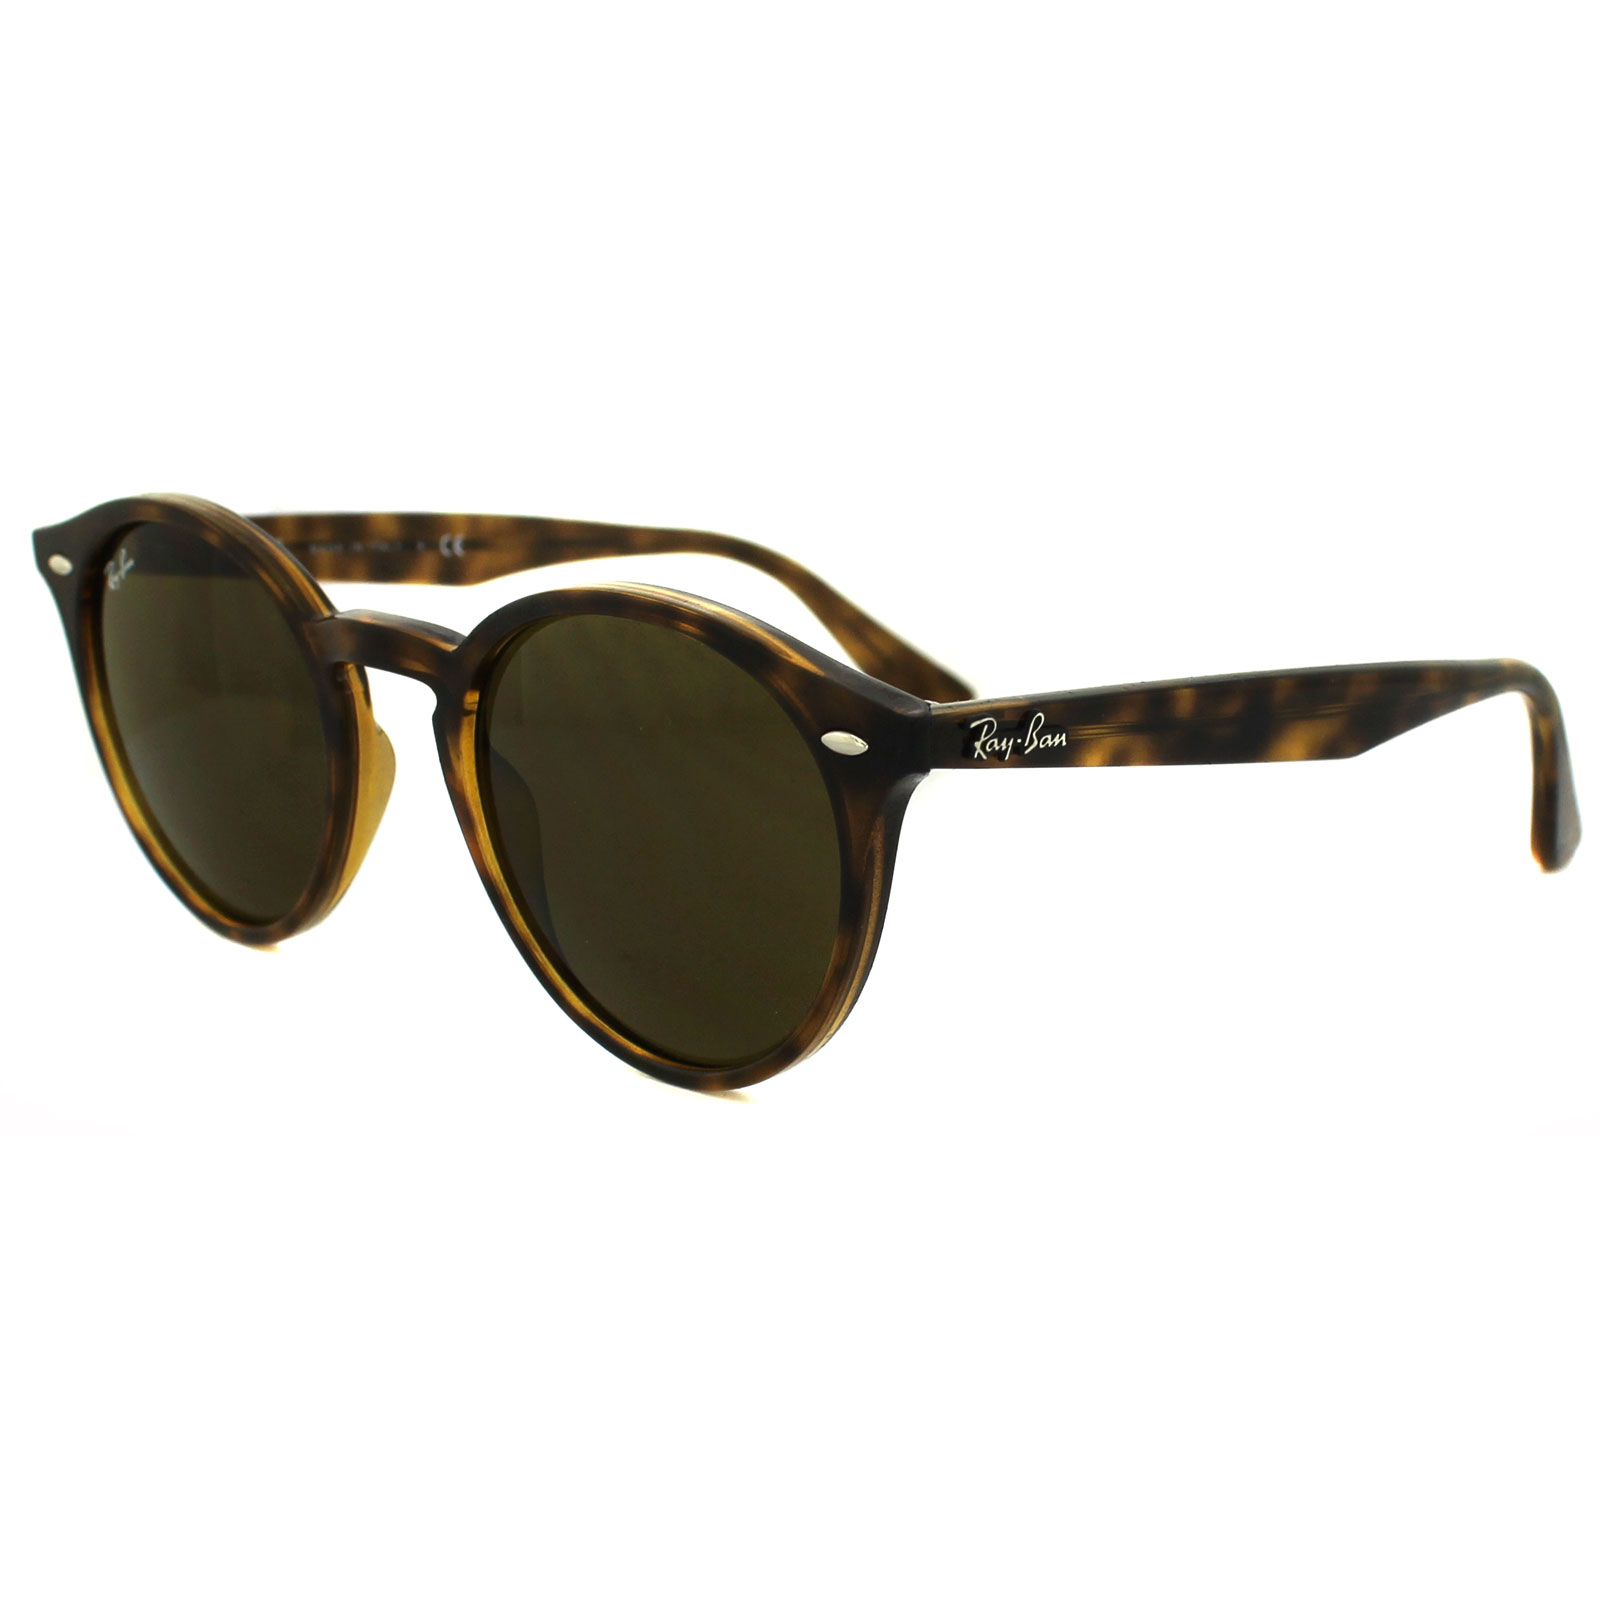 Ray Ban Sunglasses 2180 710 73 Tortoise Brown B 15